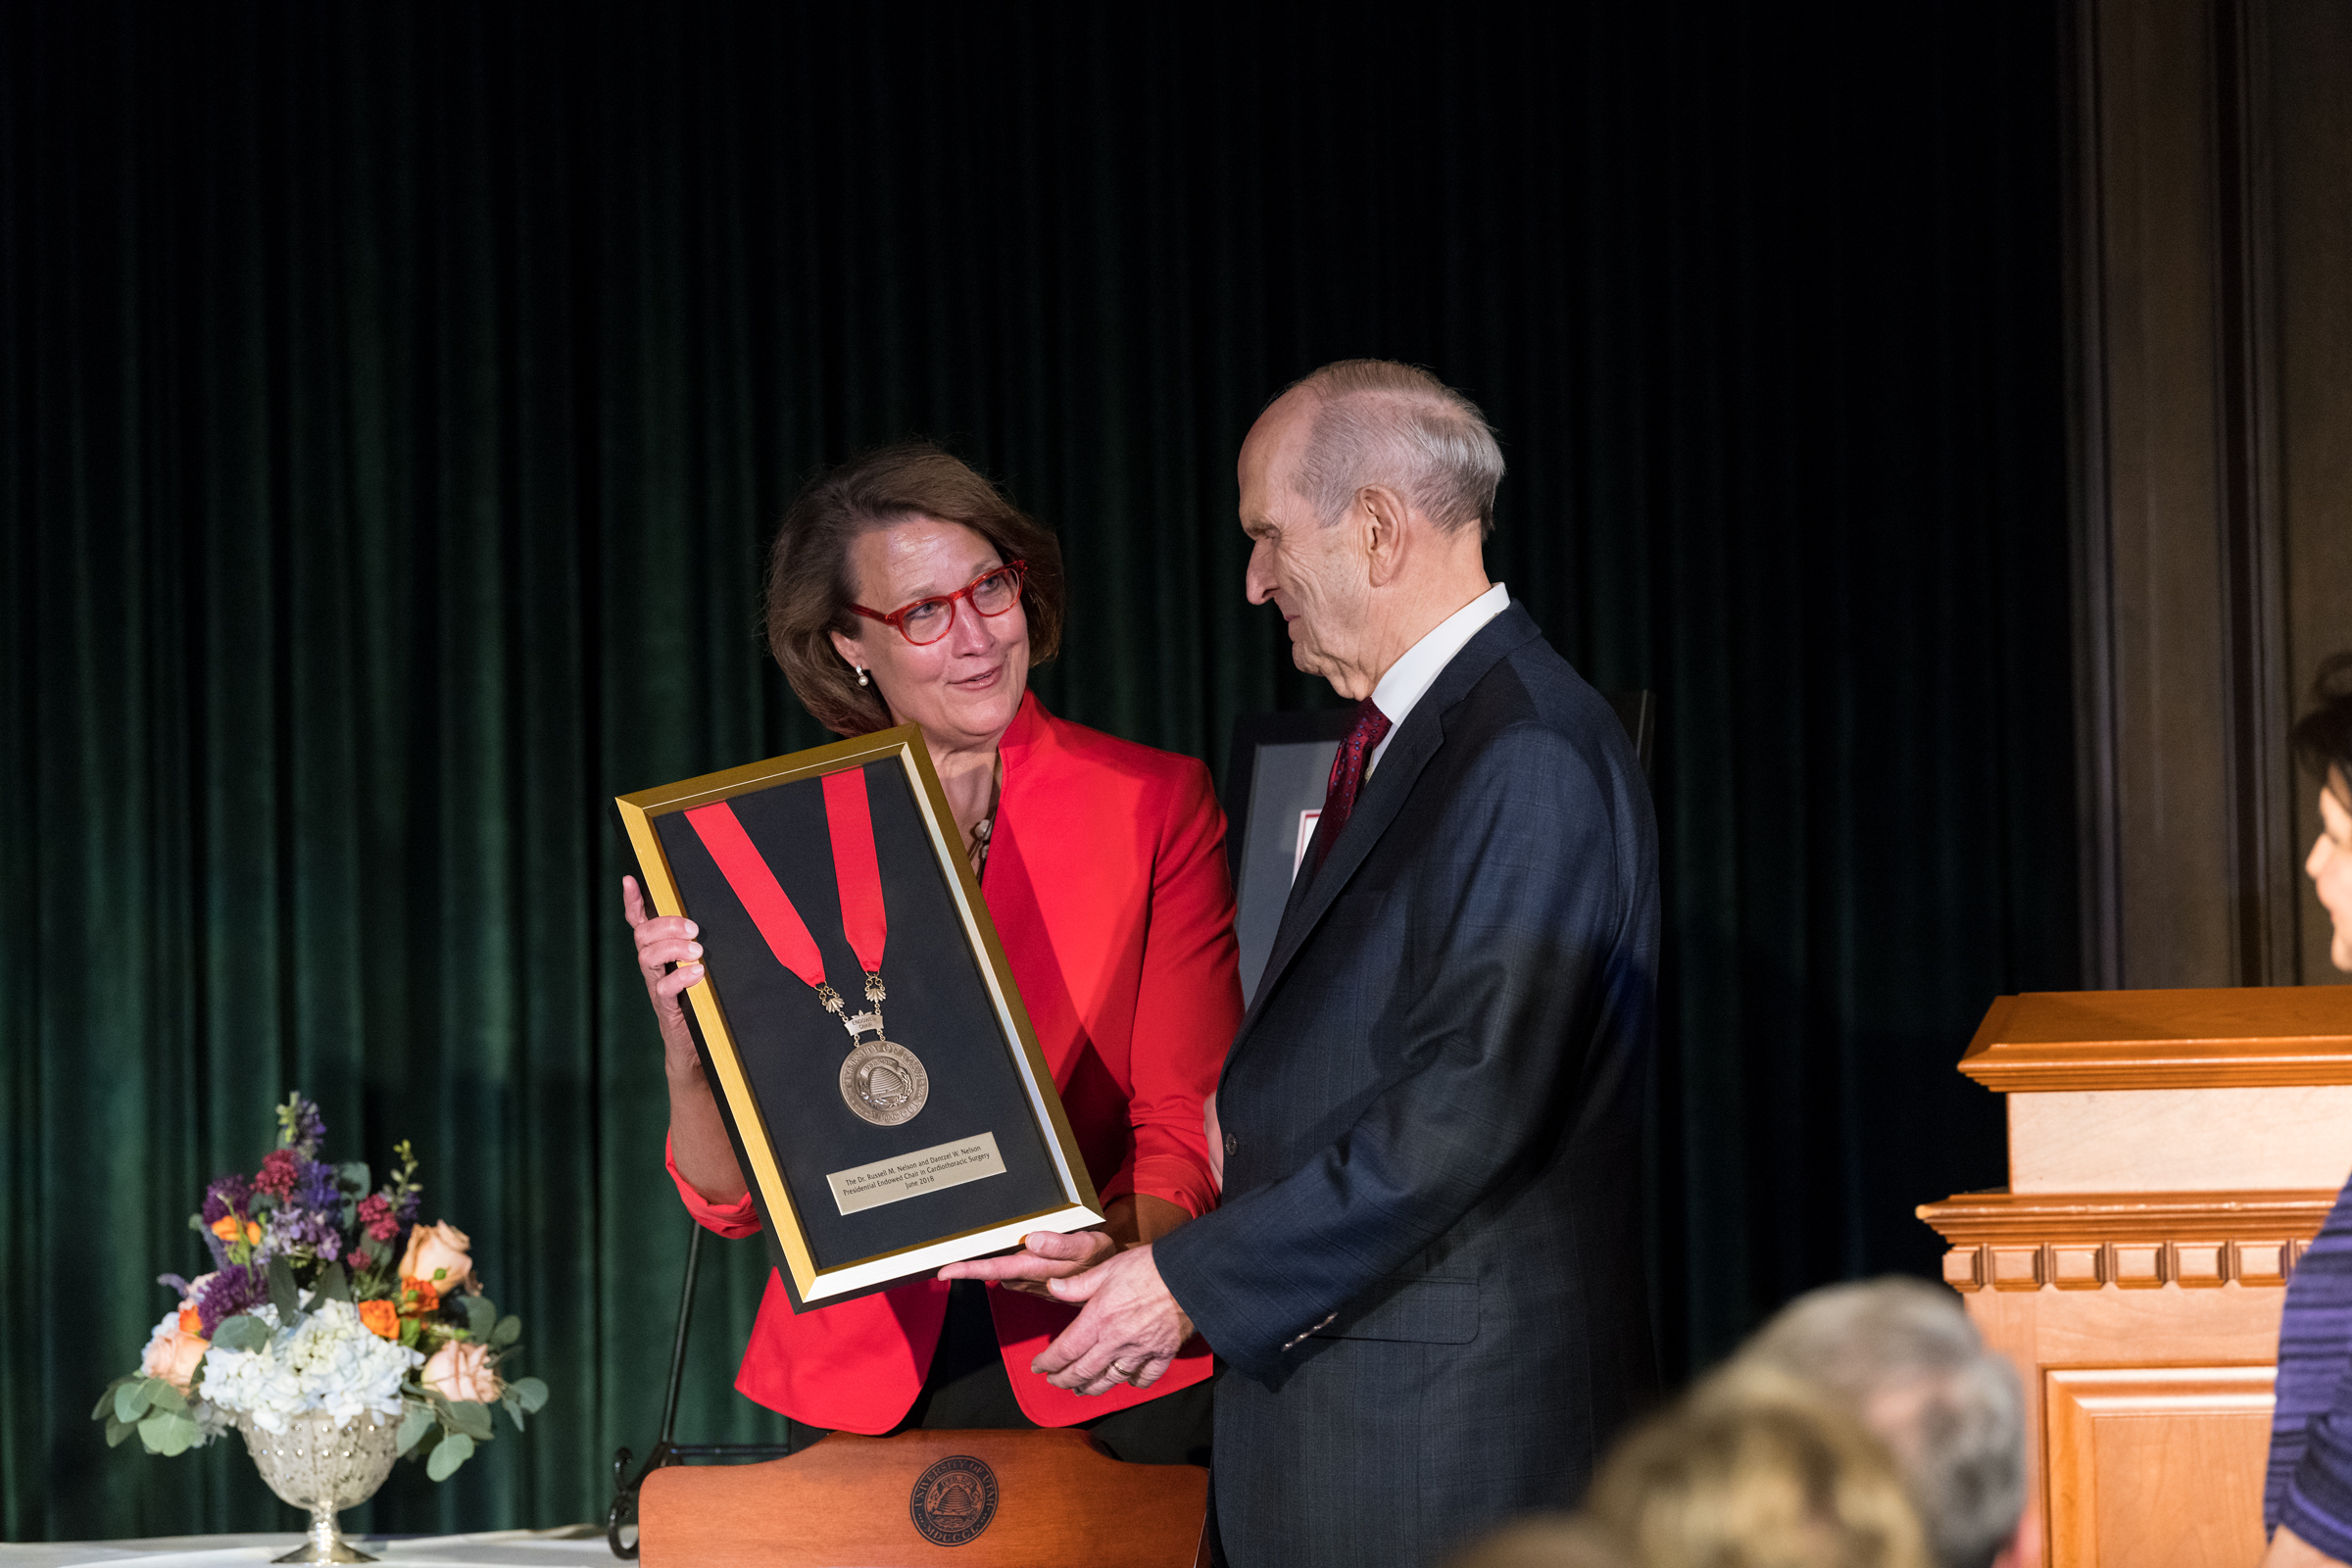 University of Utah president Ruth V. Watkins announced the Dr. Russell M. Nelson and Dantzel W. Nelson Presidential Endowed Chair in Cardiothoracic Surgery at the U.'s School of Medicine during a dinner on Temple Square on Friday, June 15, 2018.